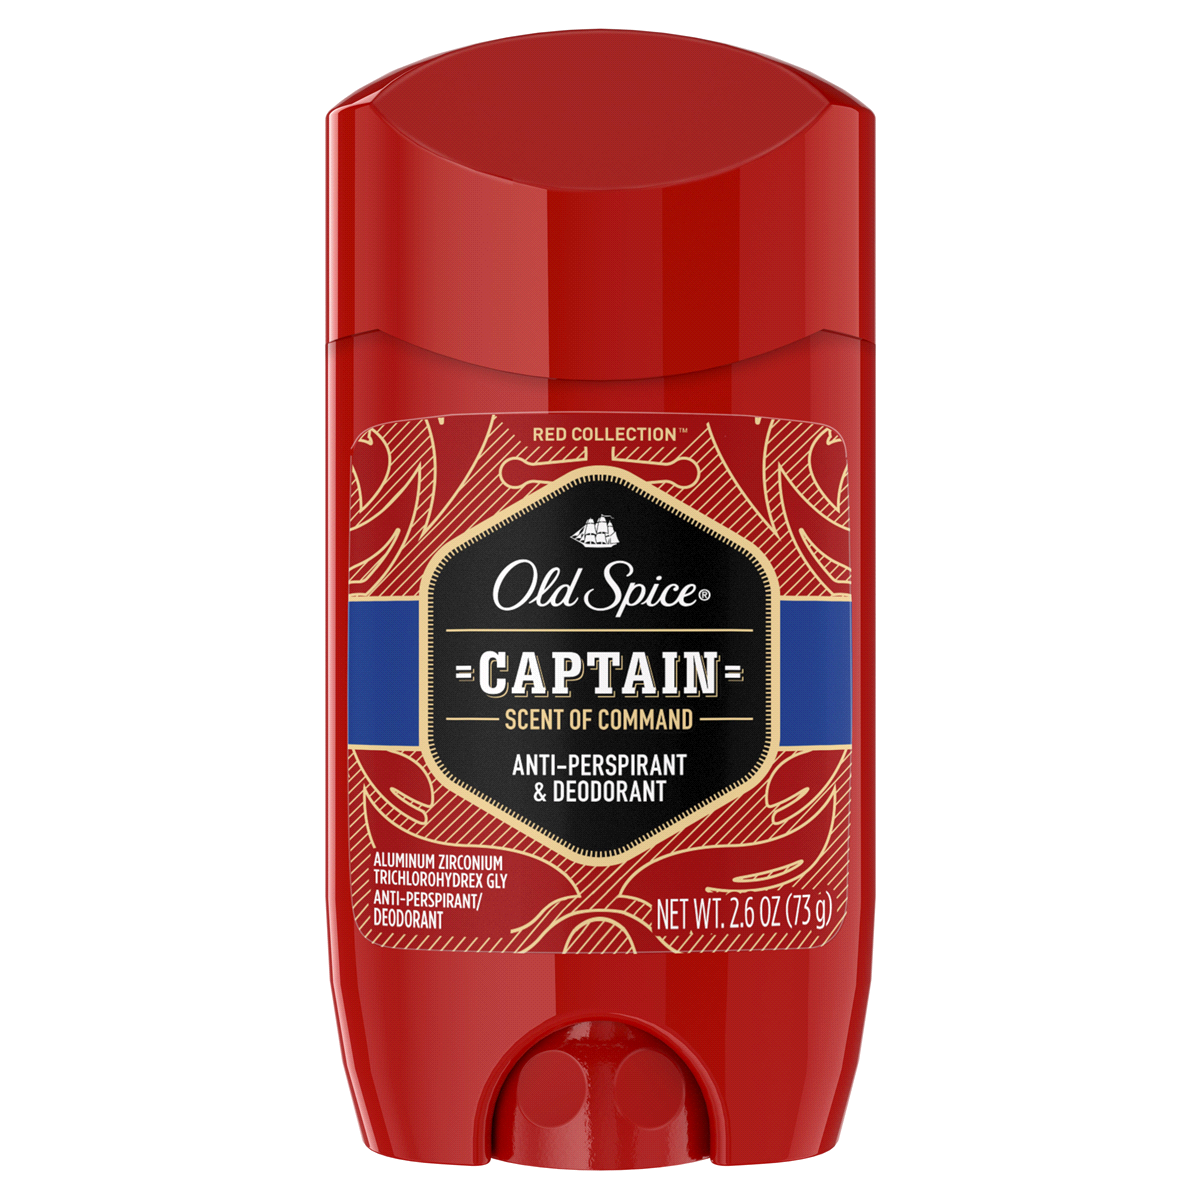 slide 2 of 4, Old Spice Red Collection Captain Invisible Solid Antiperspirant and Deodorant,